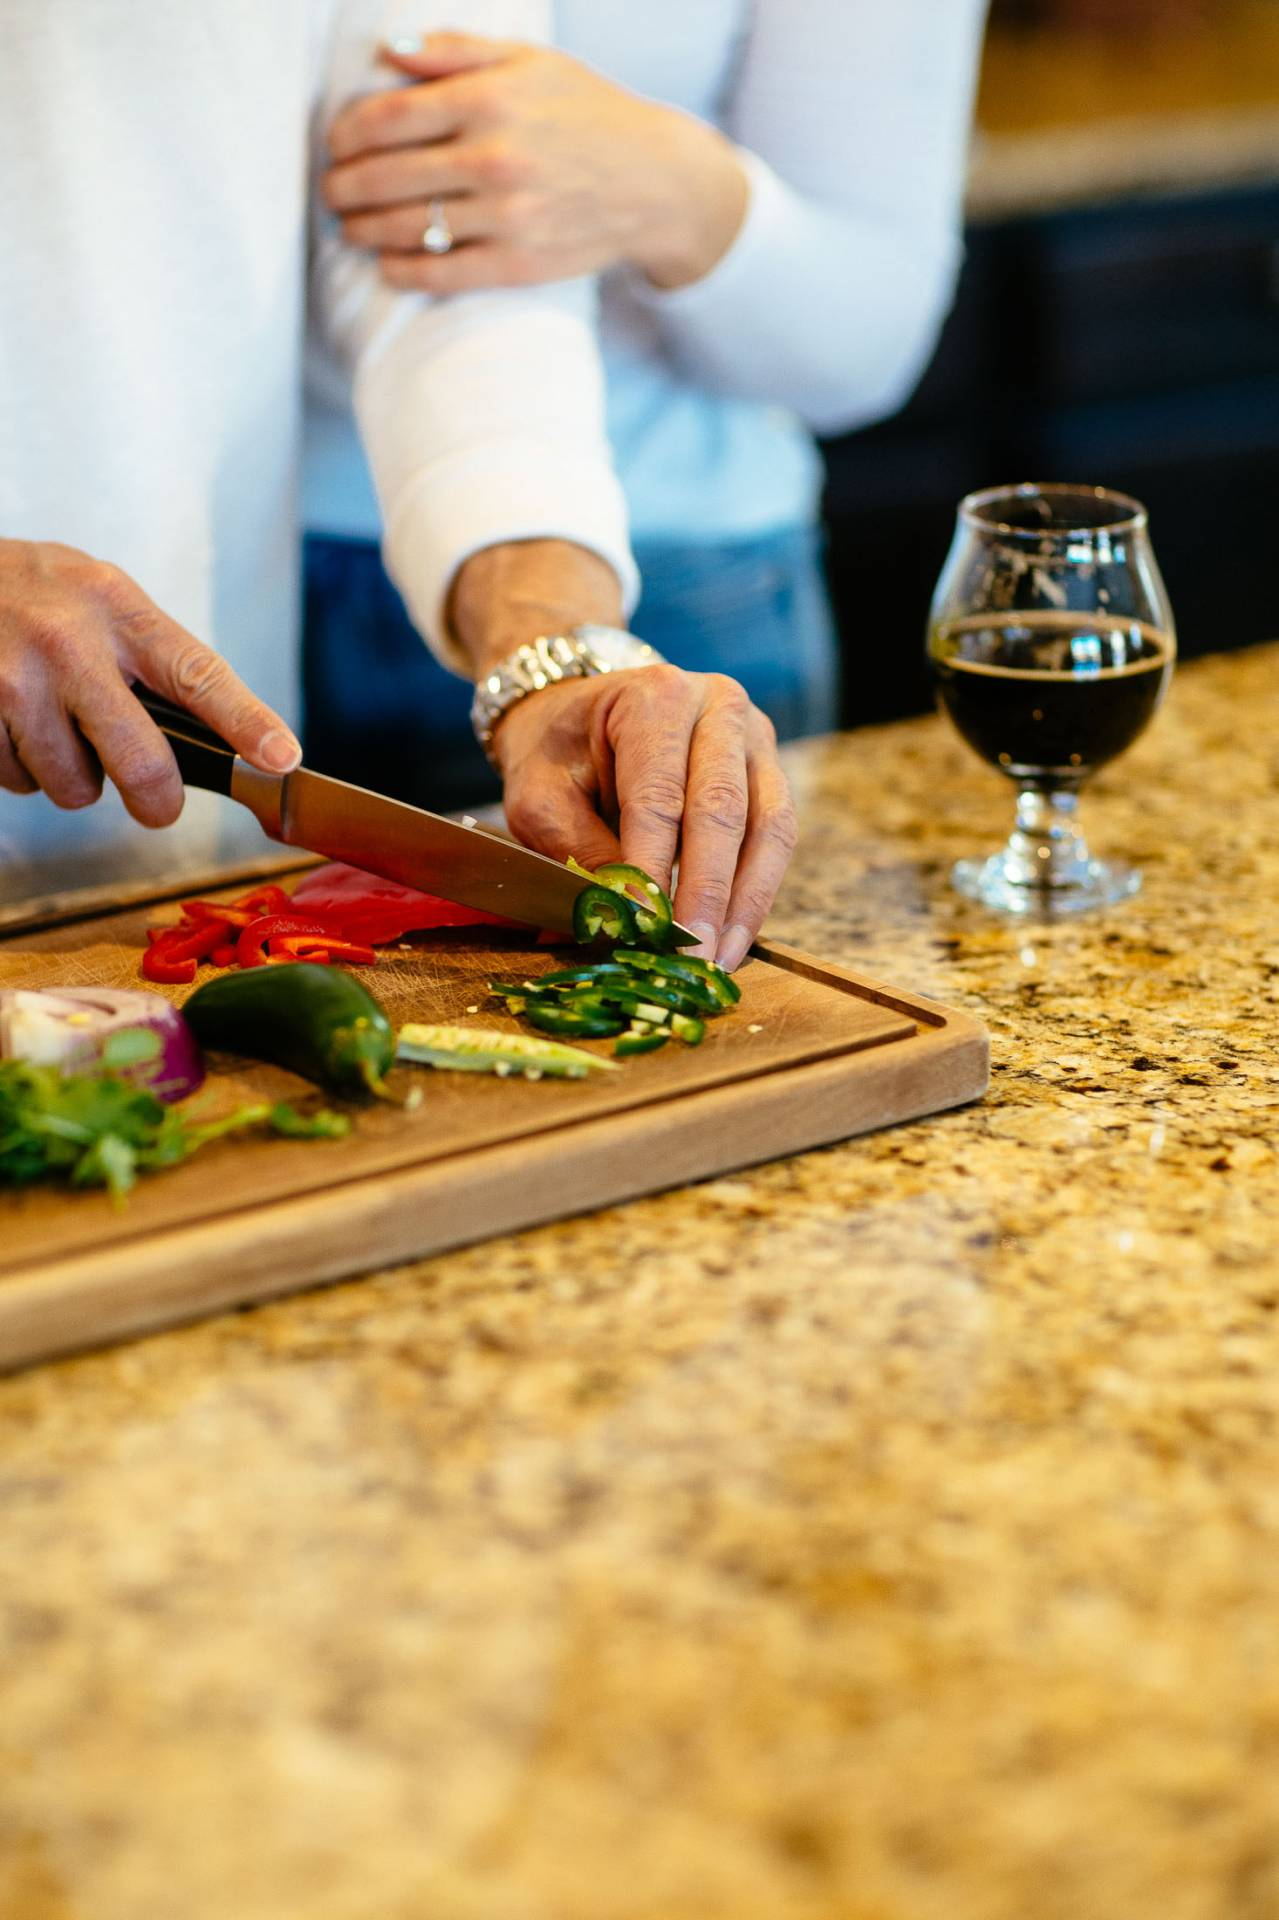 Man cuts vegatables with knife on cutting board.